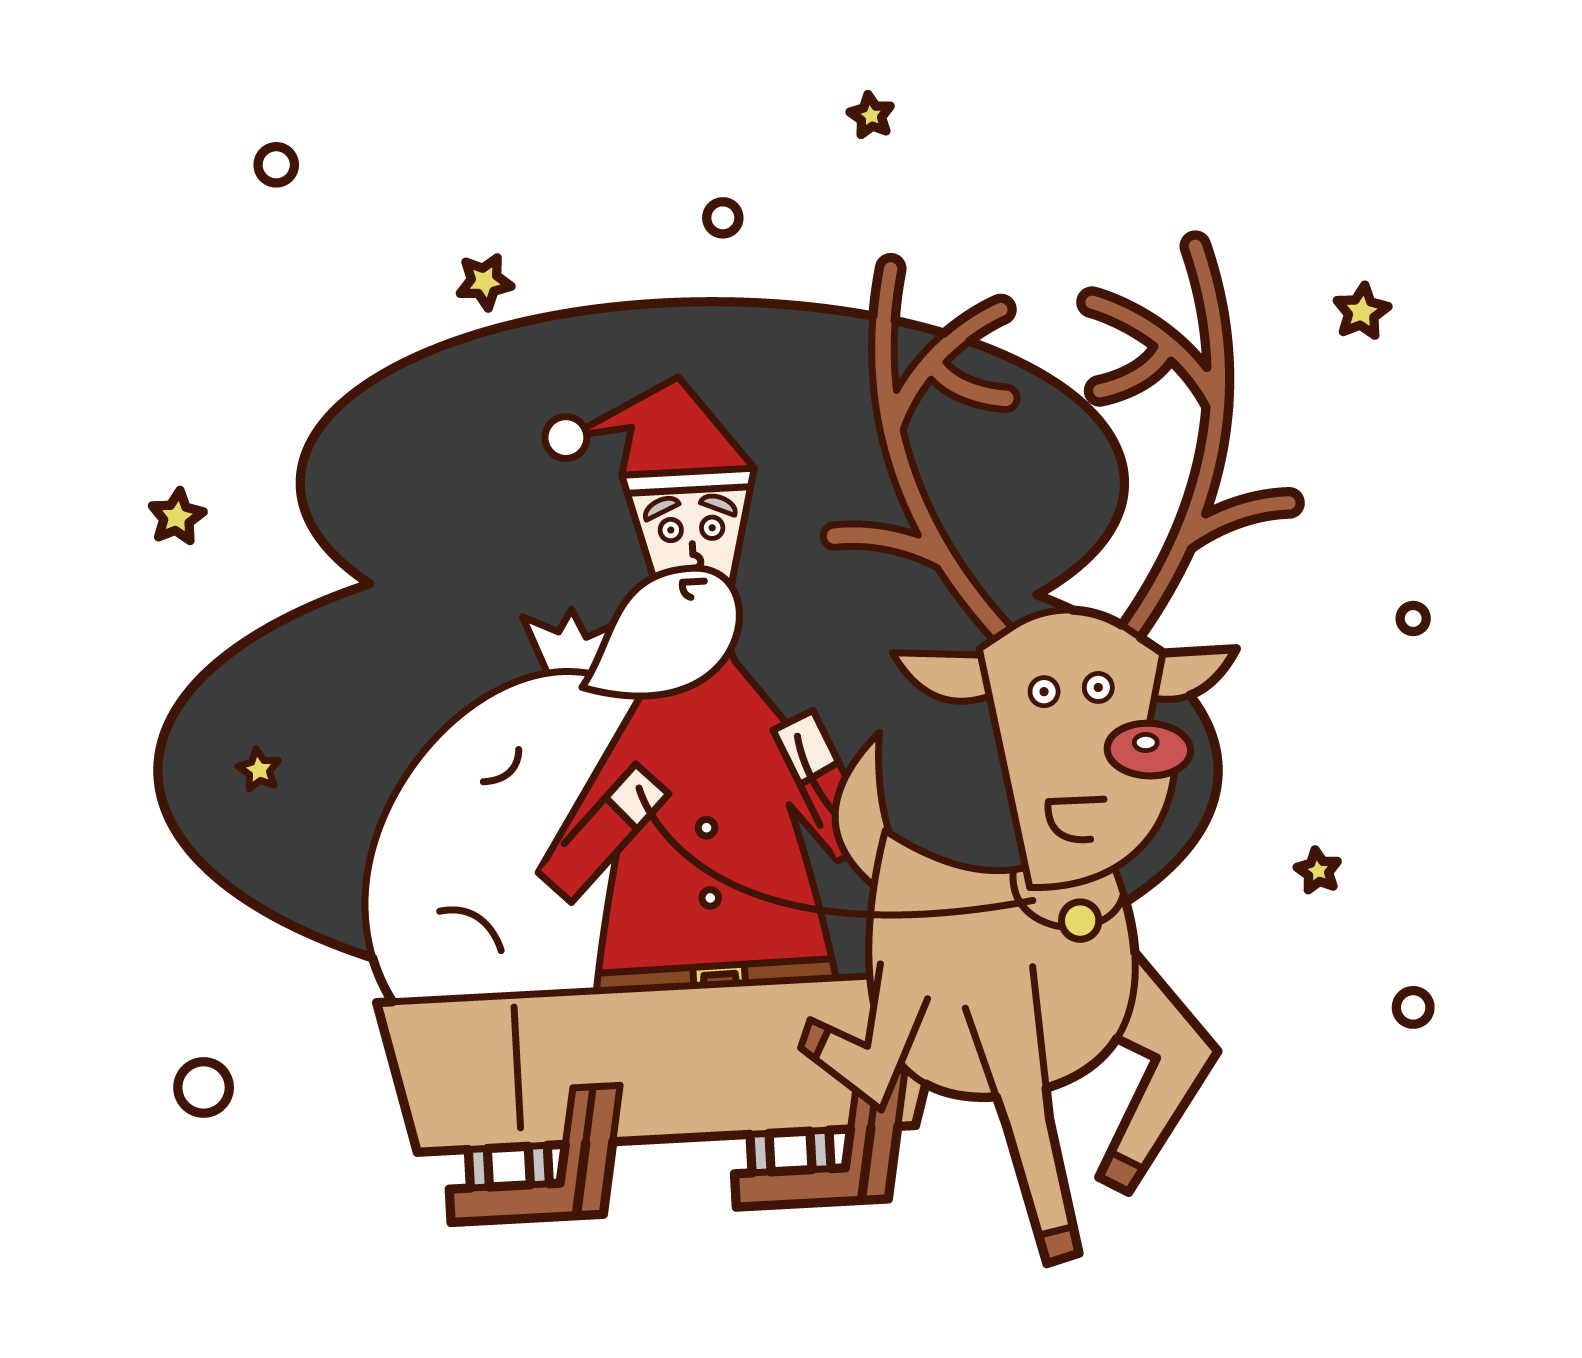 Illustration of Santa Claus on a reindeer and sled